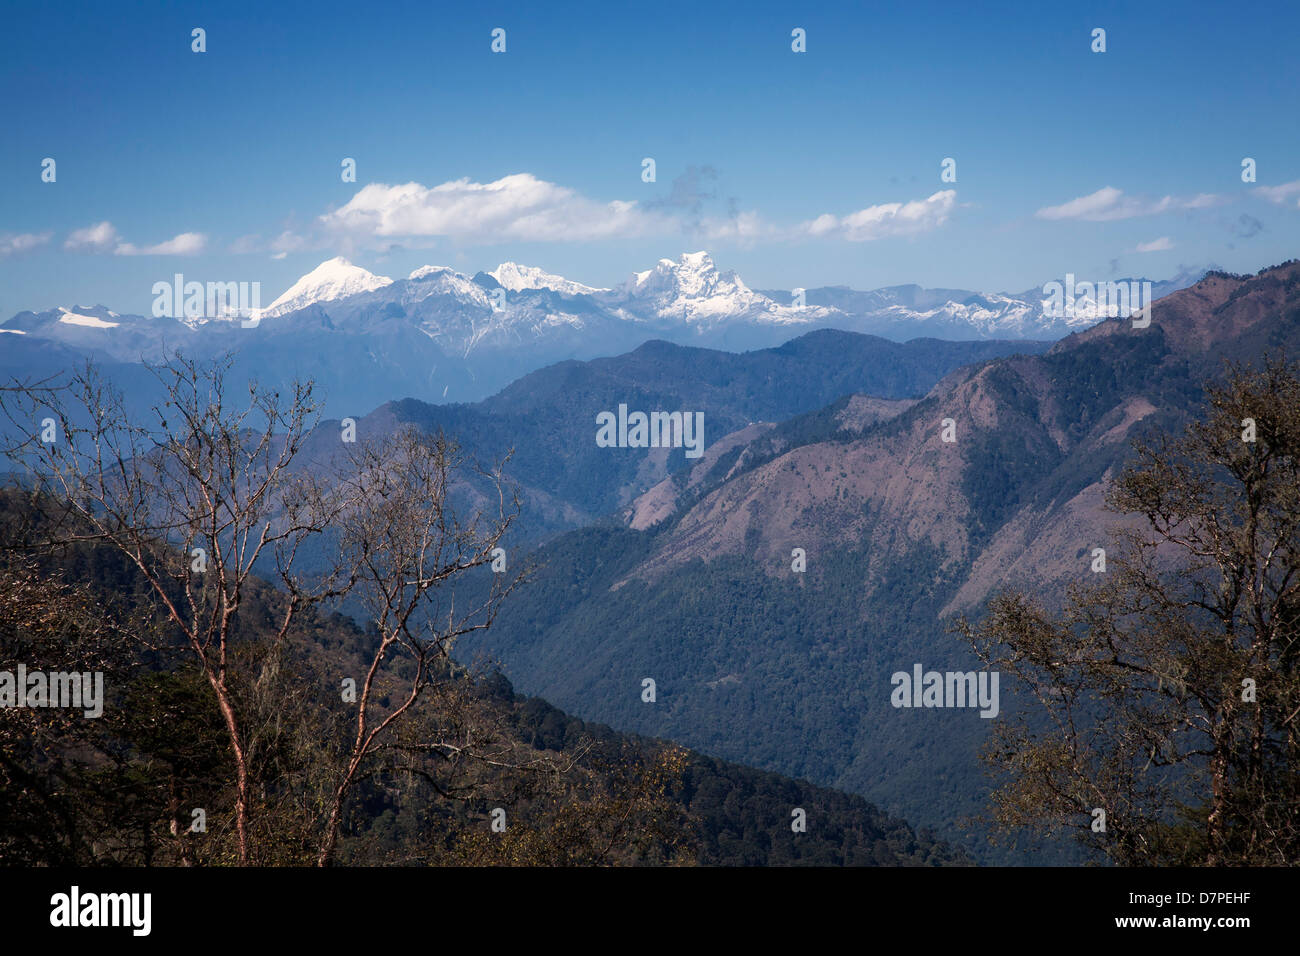 Eastern Himalaya mountains from Pele La pass . Bhutan. - Stock Image